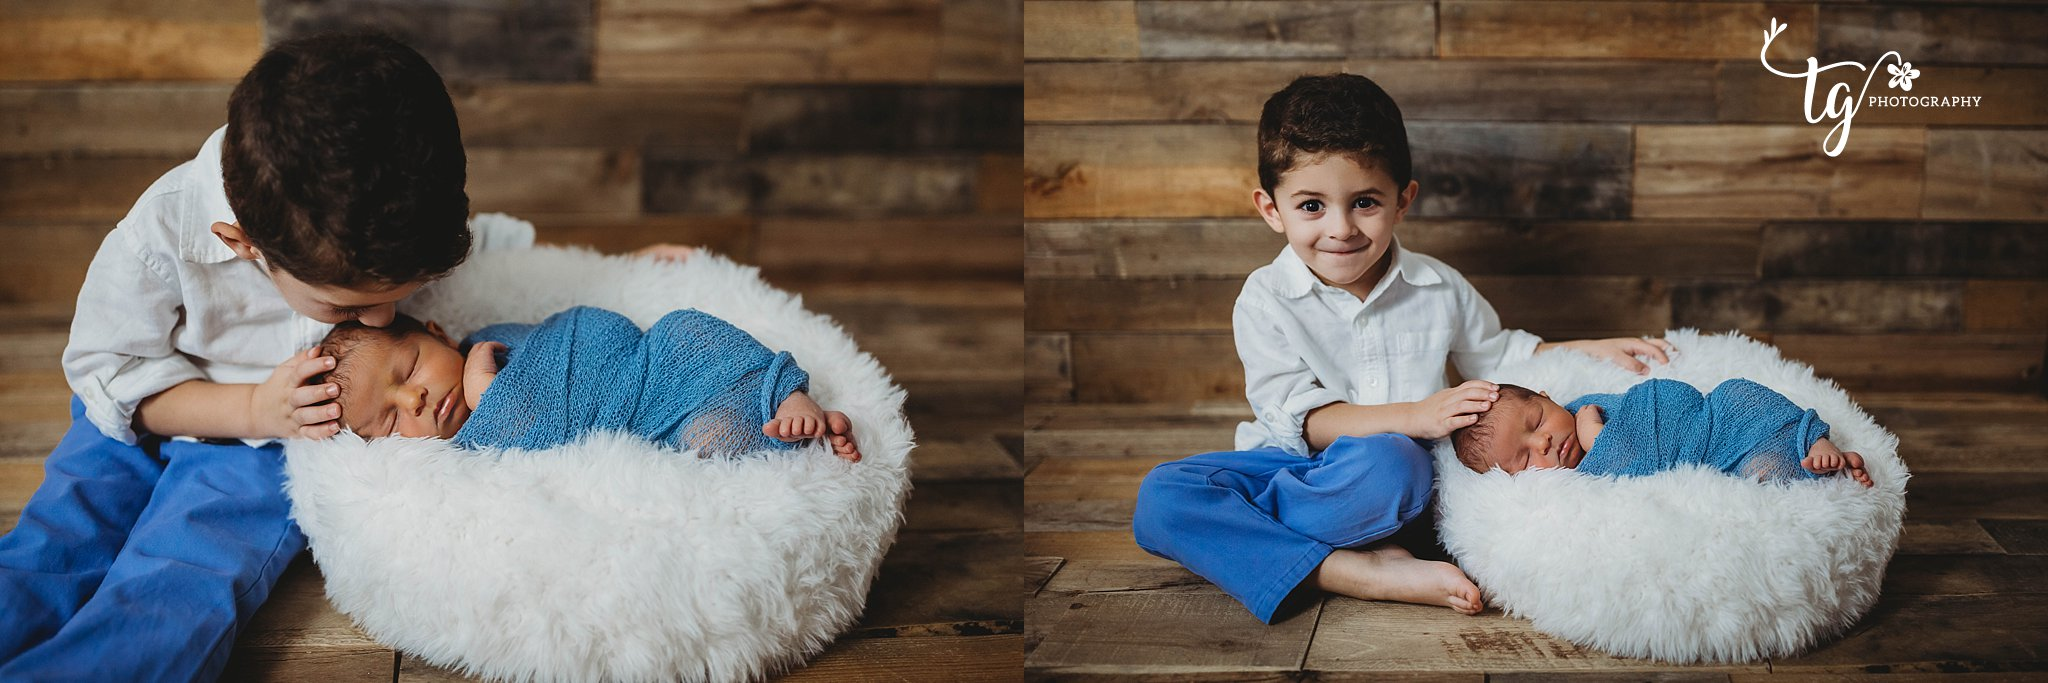 rustic sibling with newborn photography